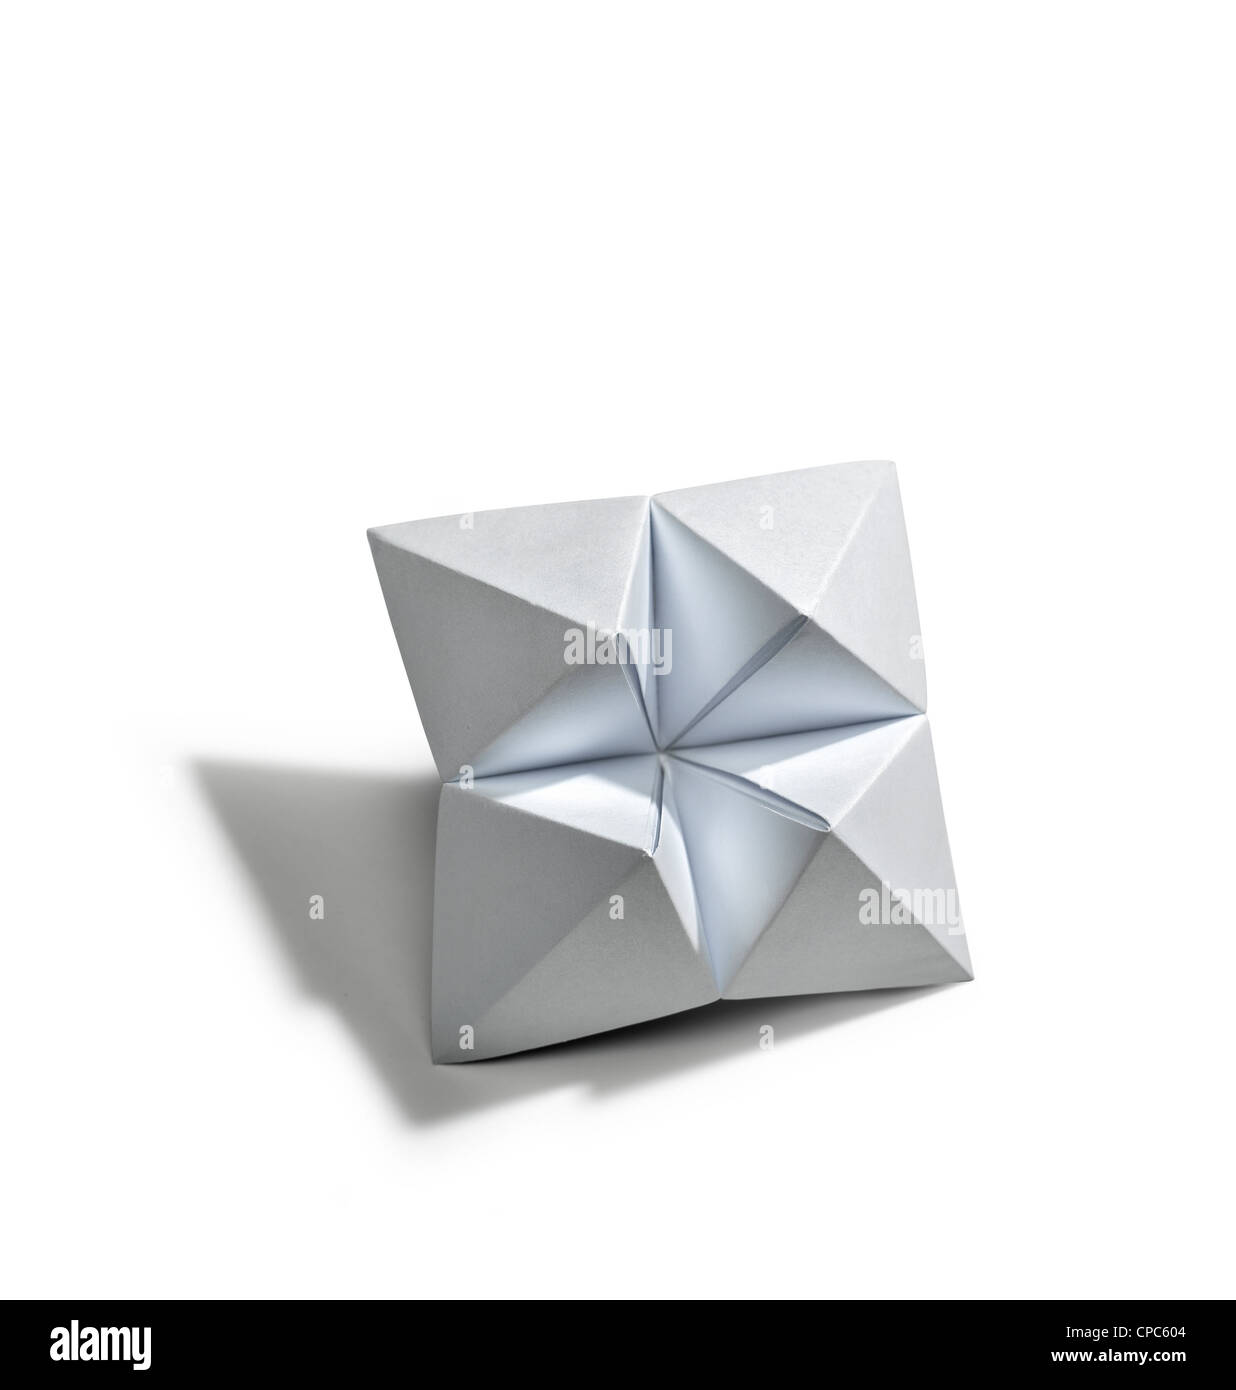 Blank star in origami isolated - Stock Image